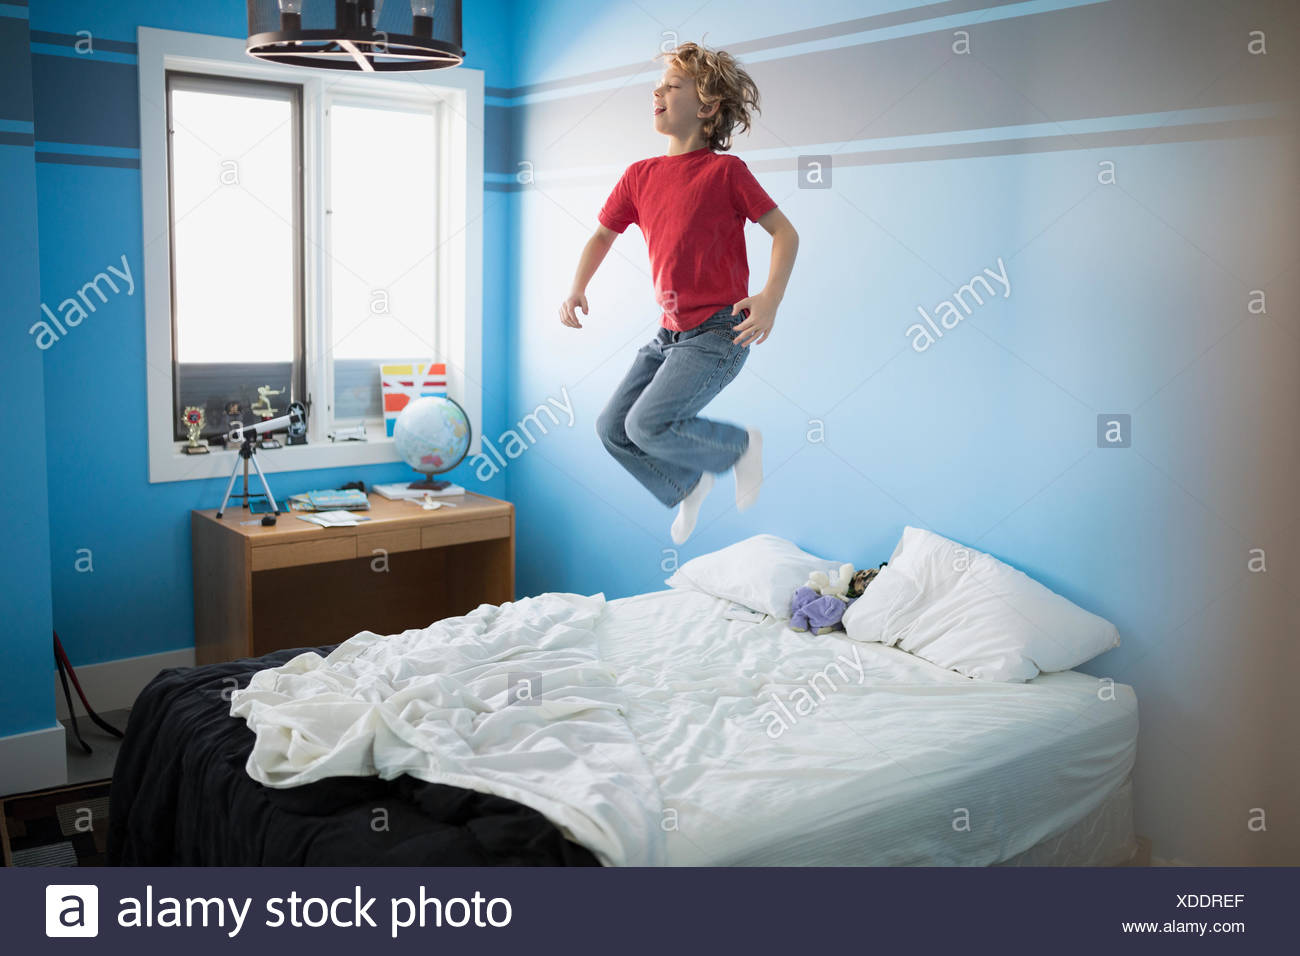 Boy jumping on bed Photo Stock